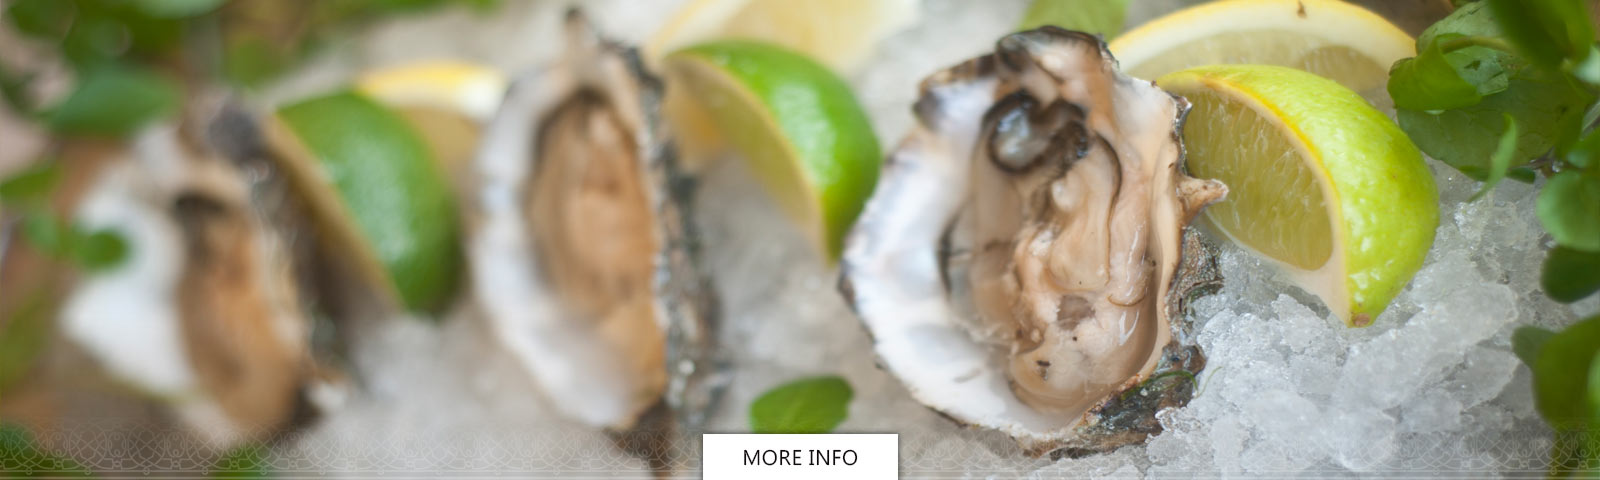 Oysters and fresh lime on a bed of crushed ice